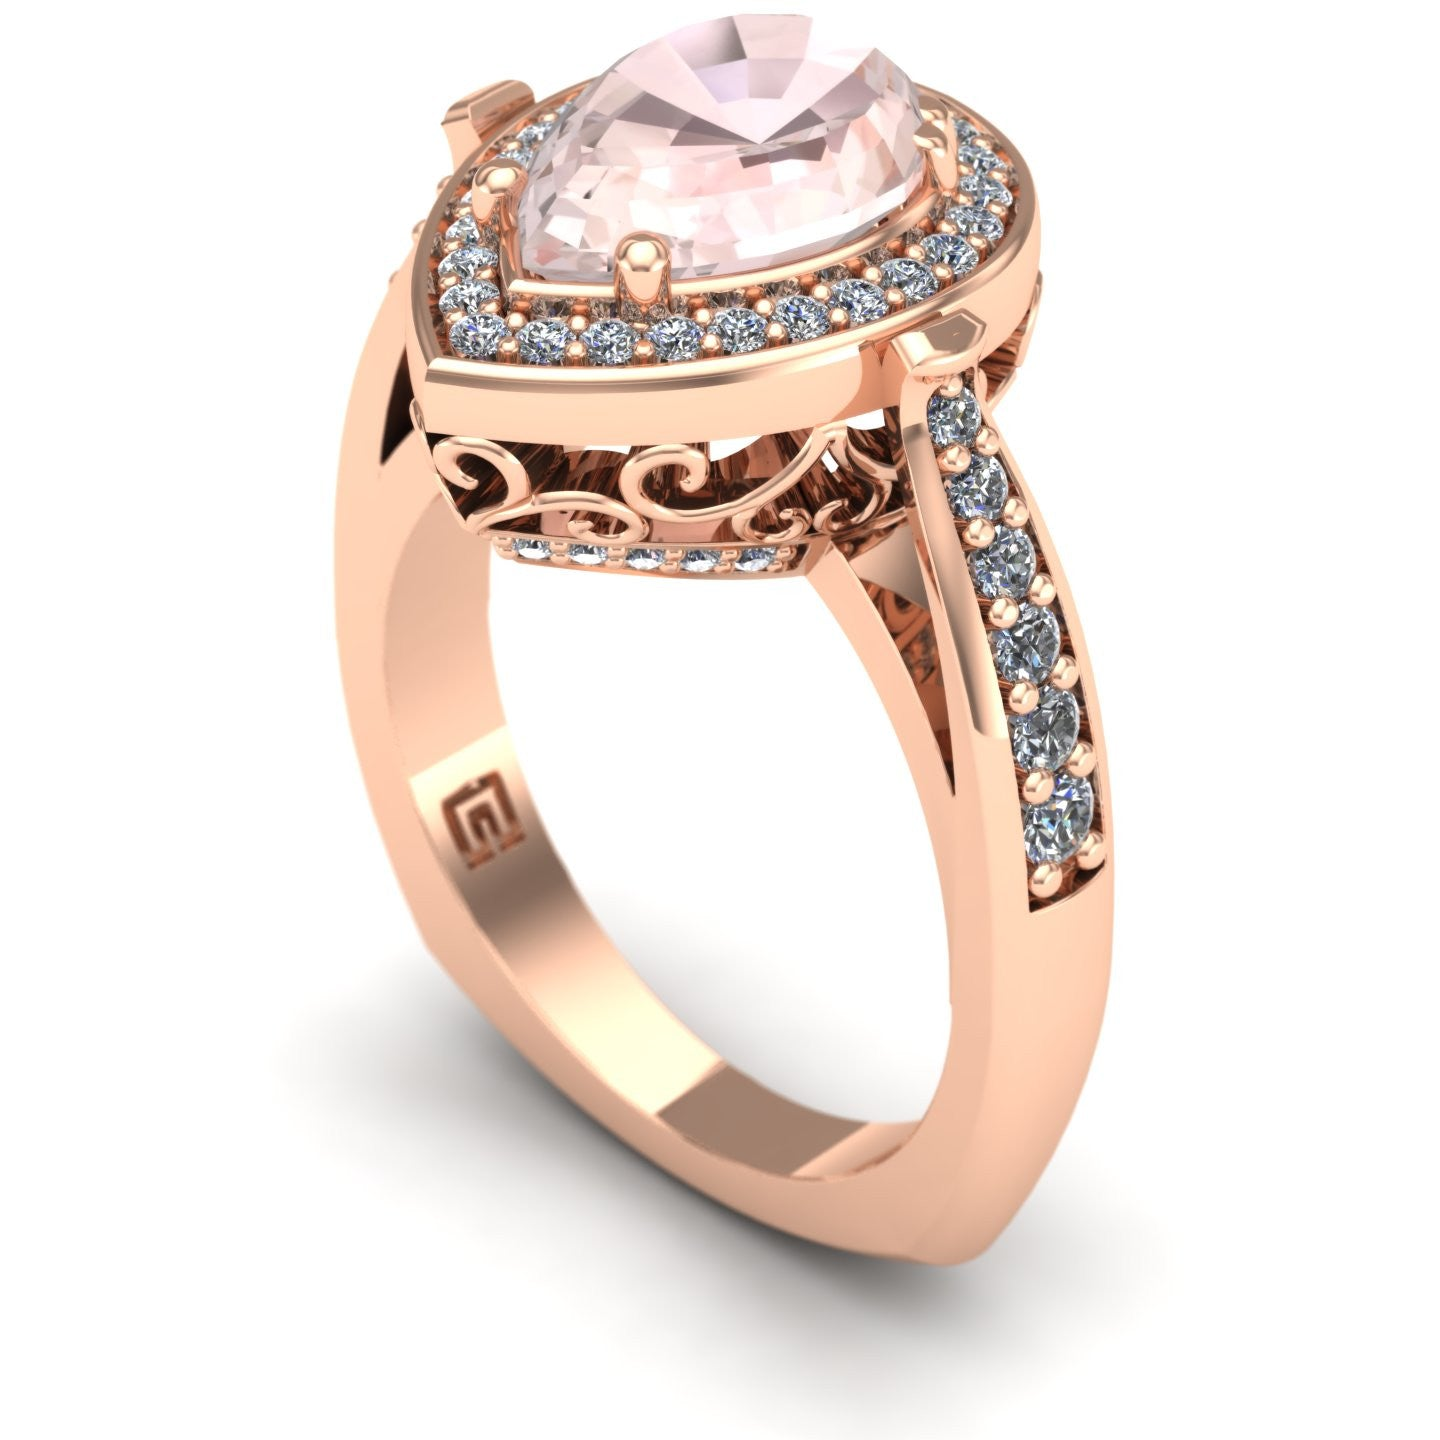 Morganite and diamond pear scroll ring in 14k rose gold